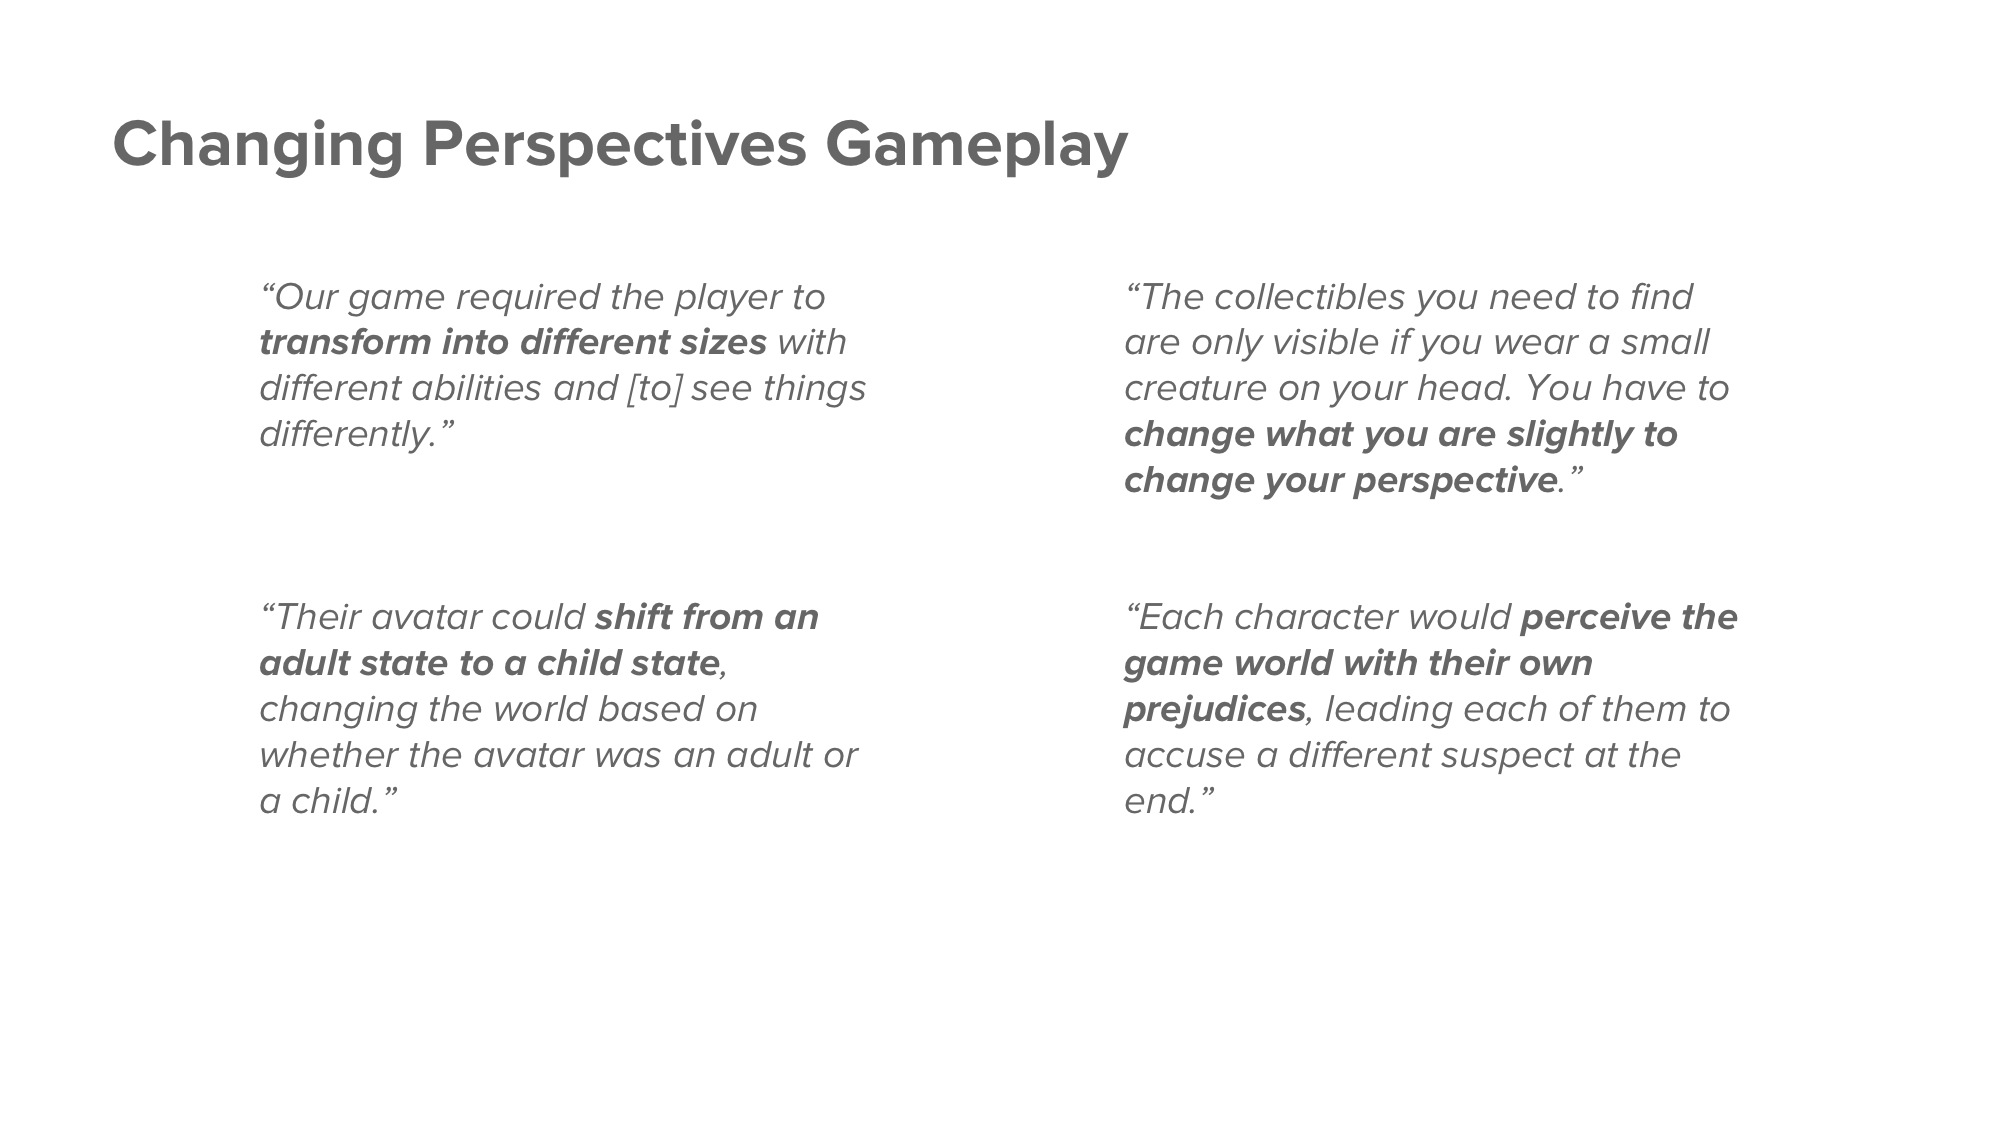 2014.10.17 - -How Are Ideas Connected- Drawing the Design Process of Idea Networks in Global Game Jam- - Meaningful Play 2014 18.jpeg